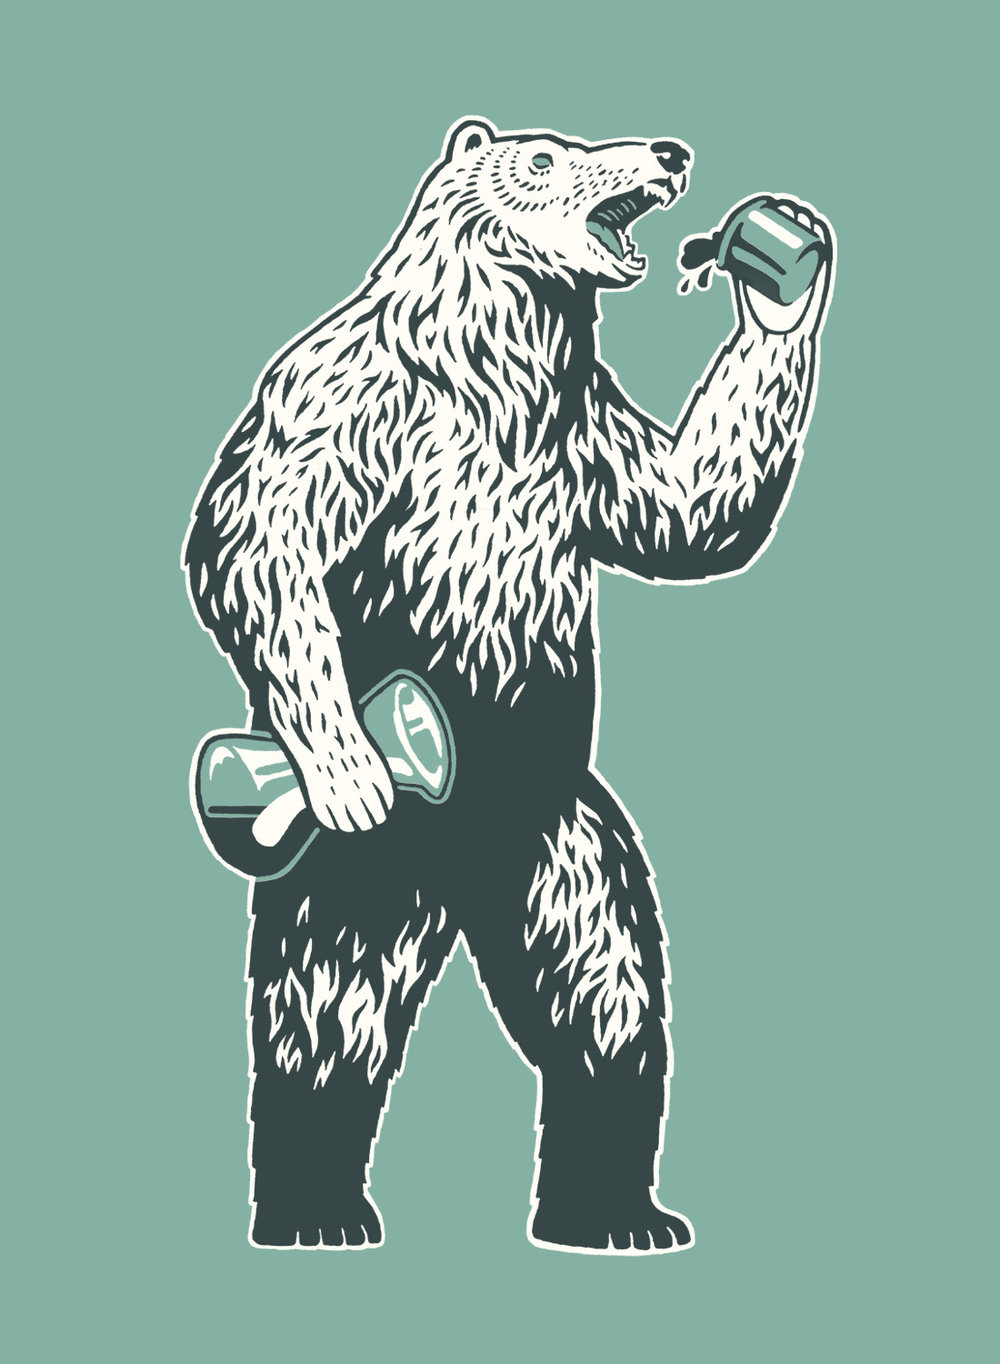 illo_coffee-bear.jpg